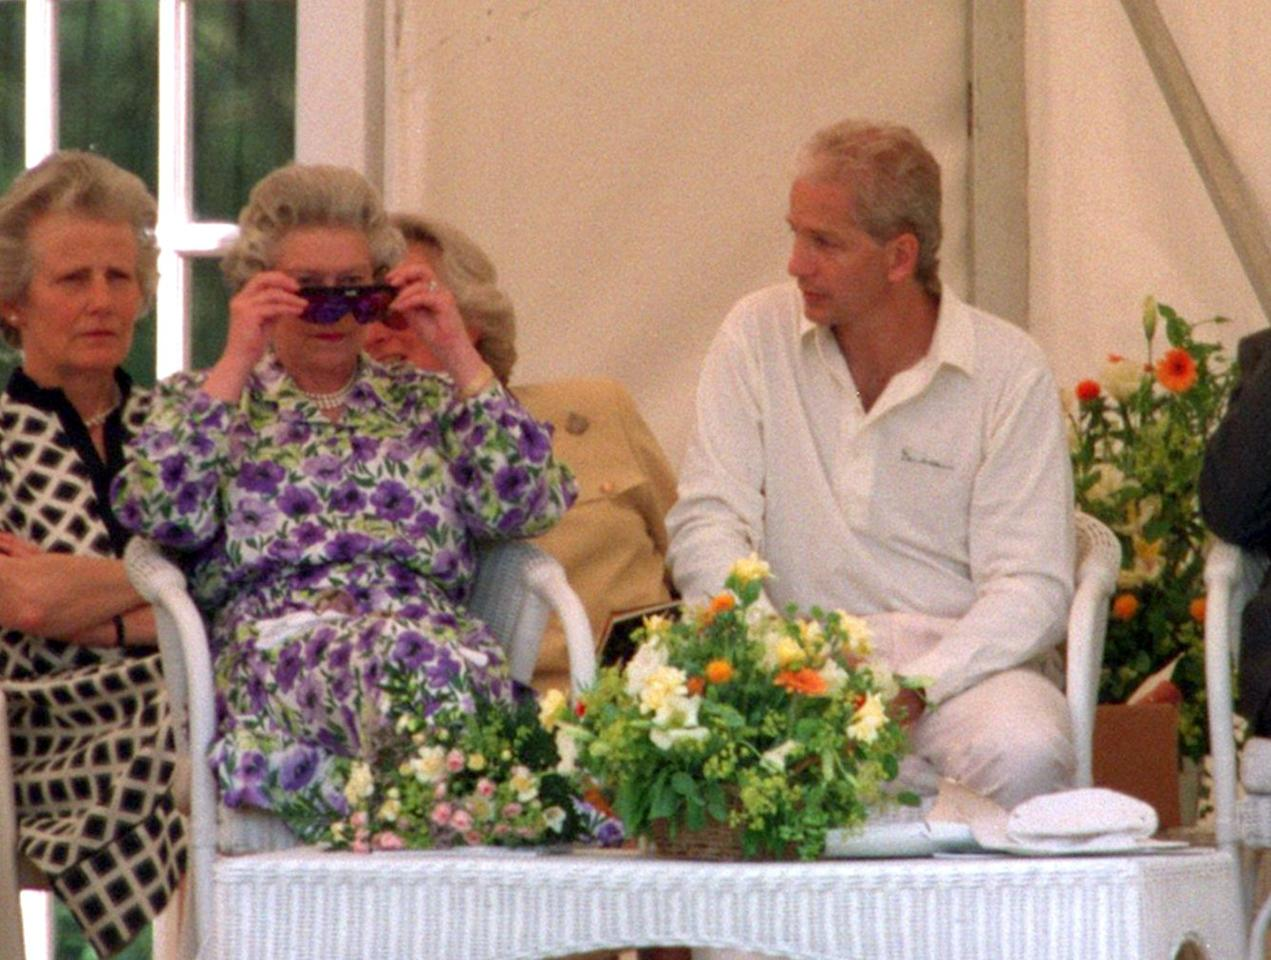 23 JUN 1994:  QUEEN ELIZABETH OF GREAT BRITAIN AND NORTHERN IRELAND TRIES ON THE SPECIALLY DESIGNED SUNGLASSES USED BY THE EX-ENGLAND CRICKET CAPTAIN DAVID GOWER (RIGHT) DURING THE VISITING SOUTH AFRICAN CRICKET TEAM FIRST MATCH ON BRITISH SOIL FOR 29 YEA